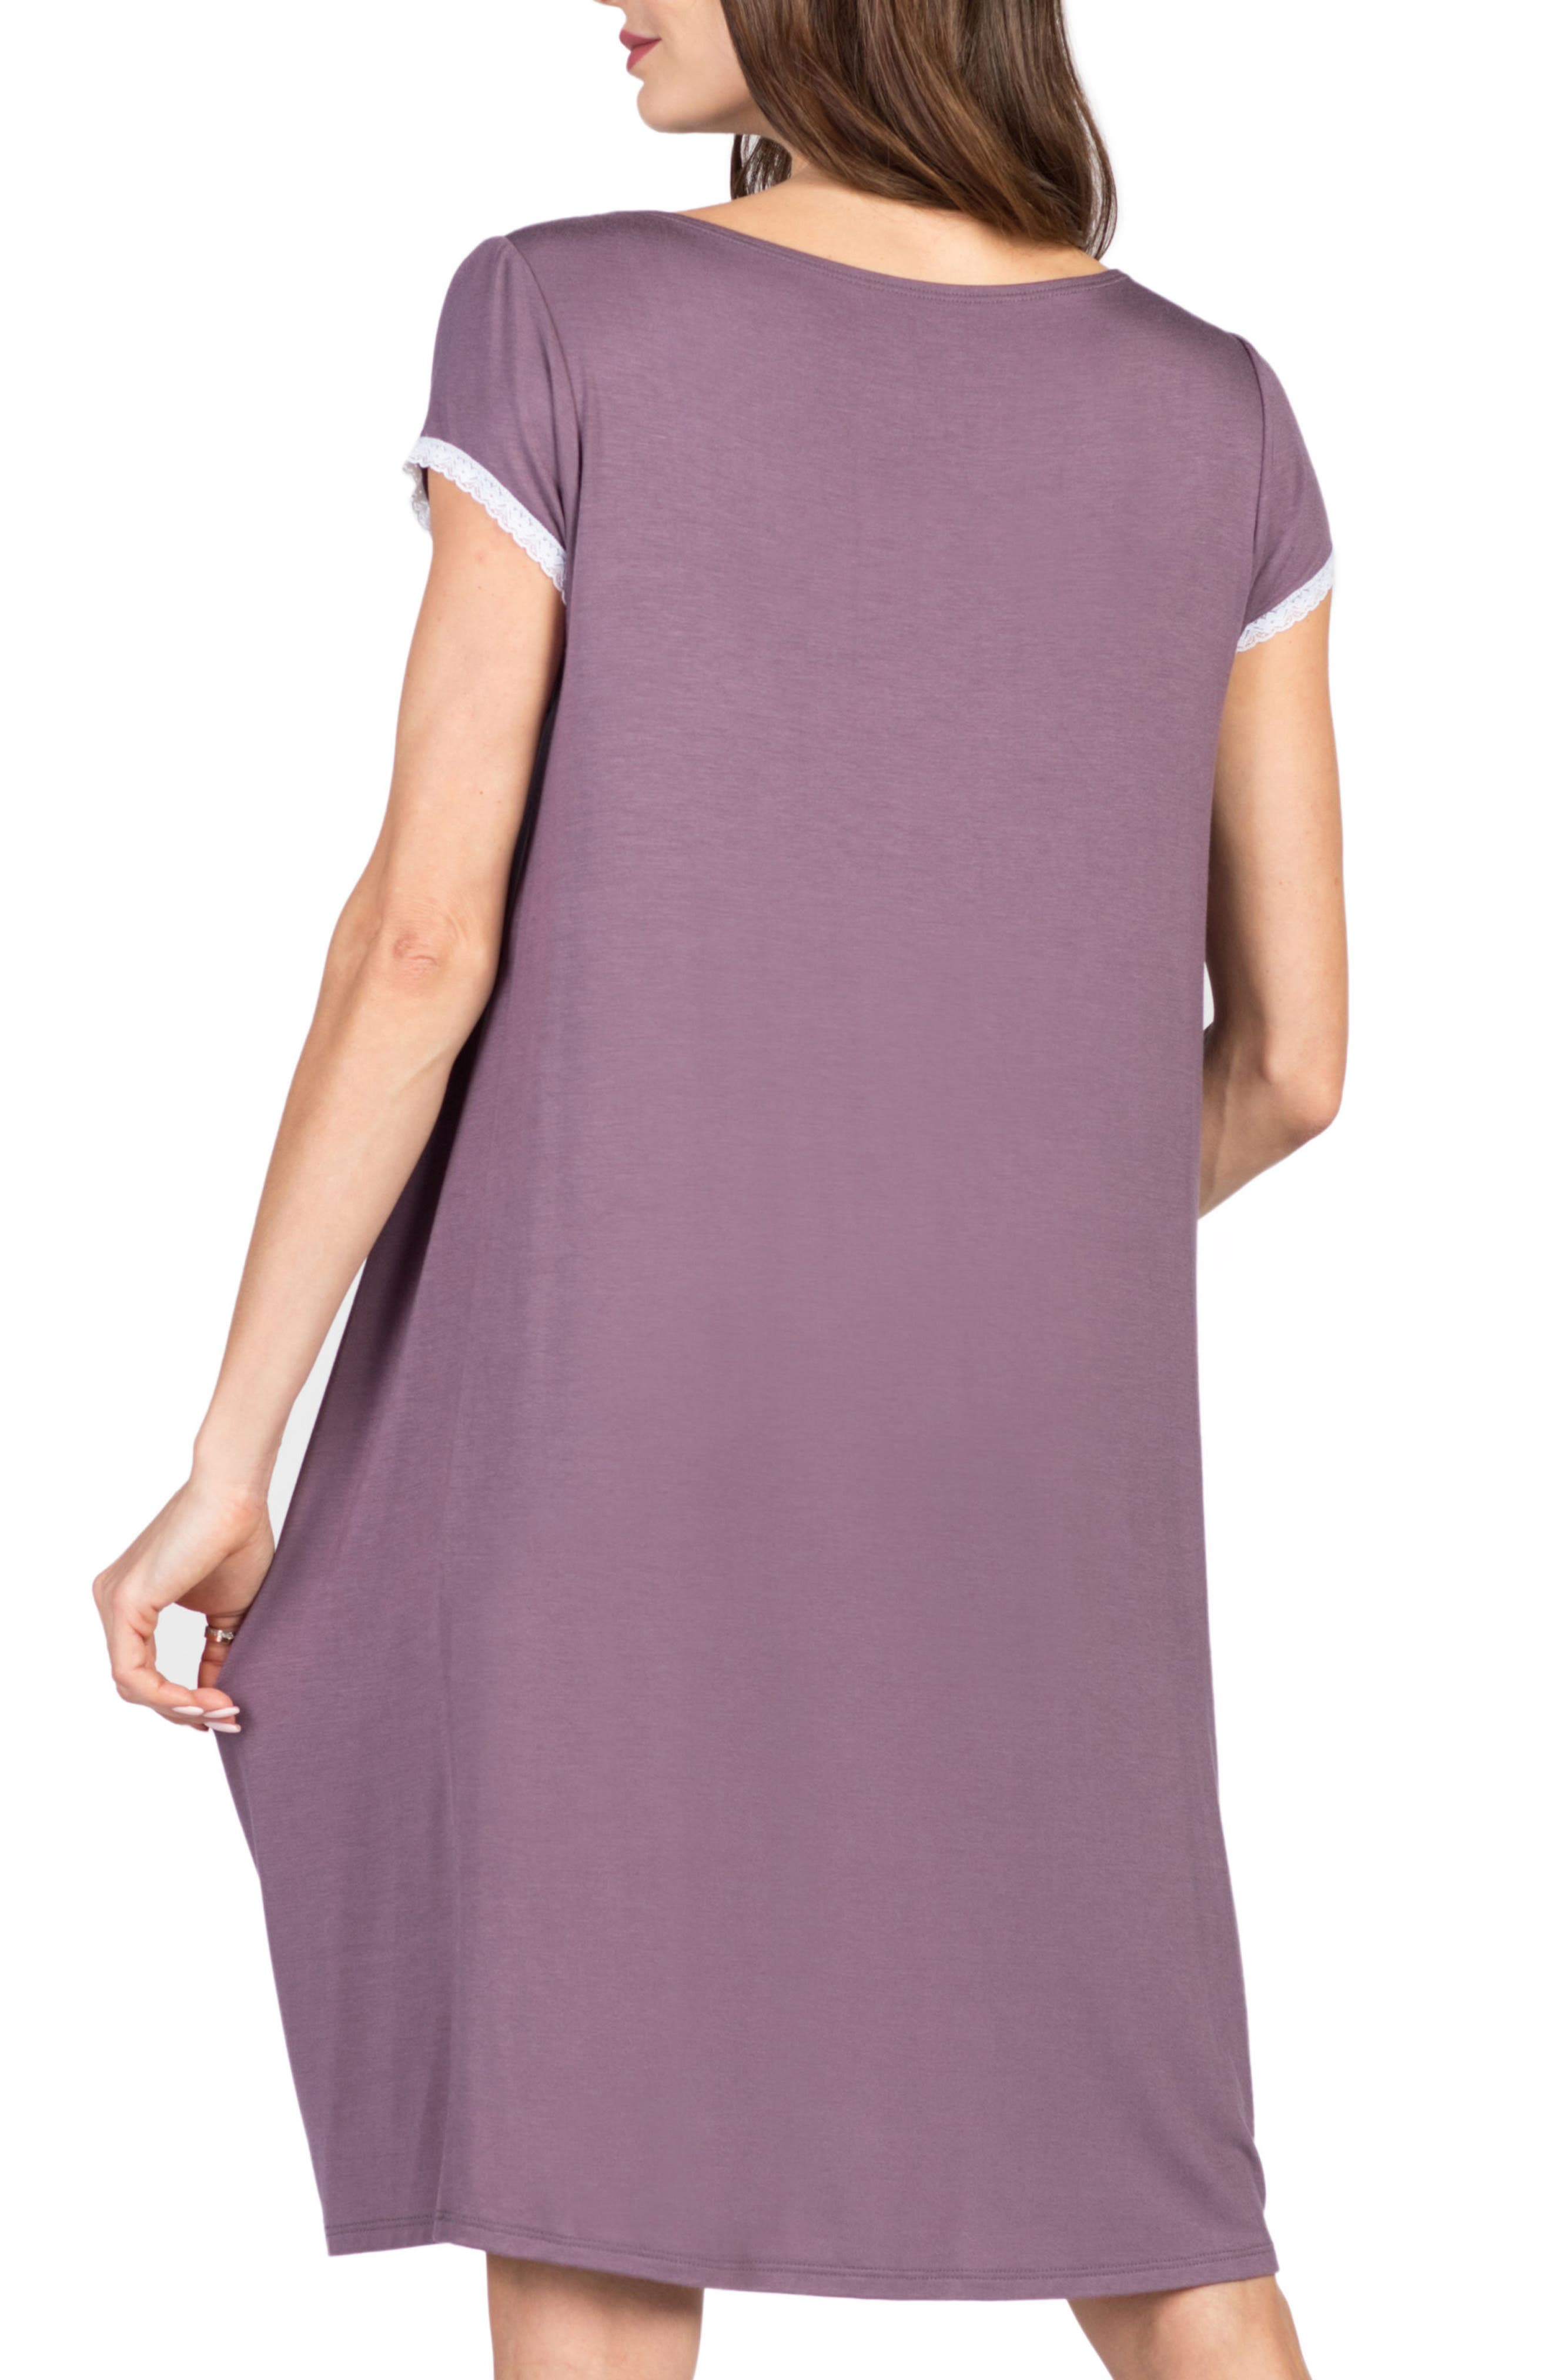 Joliet Maternity/Nursing Nightgown,                             Alternate thumbnail 2, color,                             Lilac